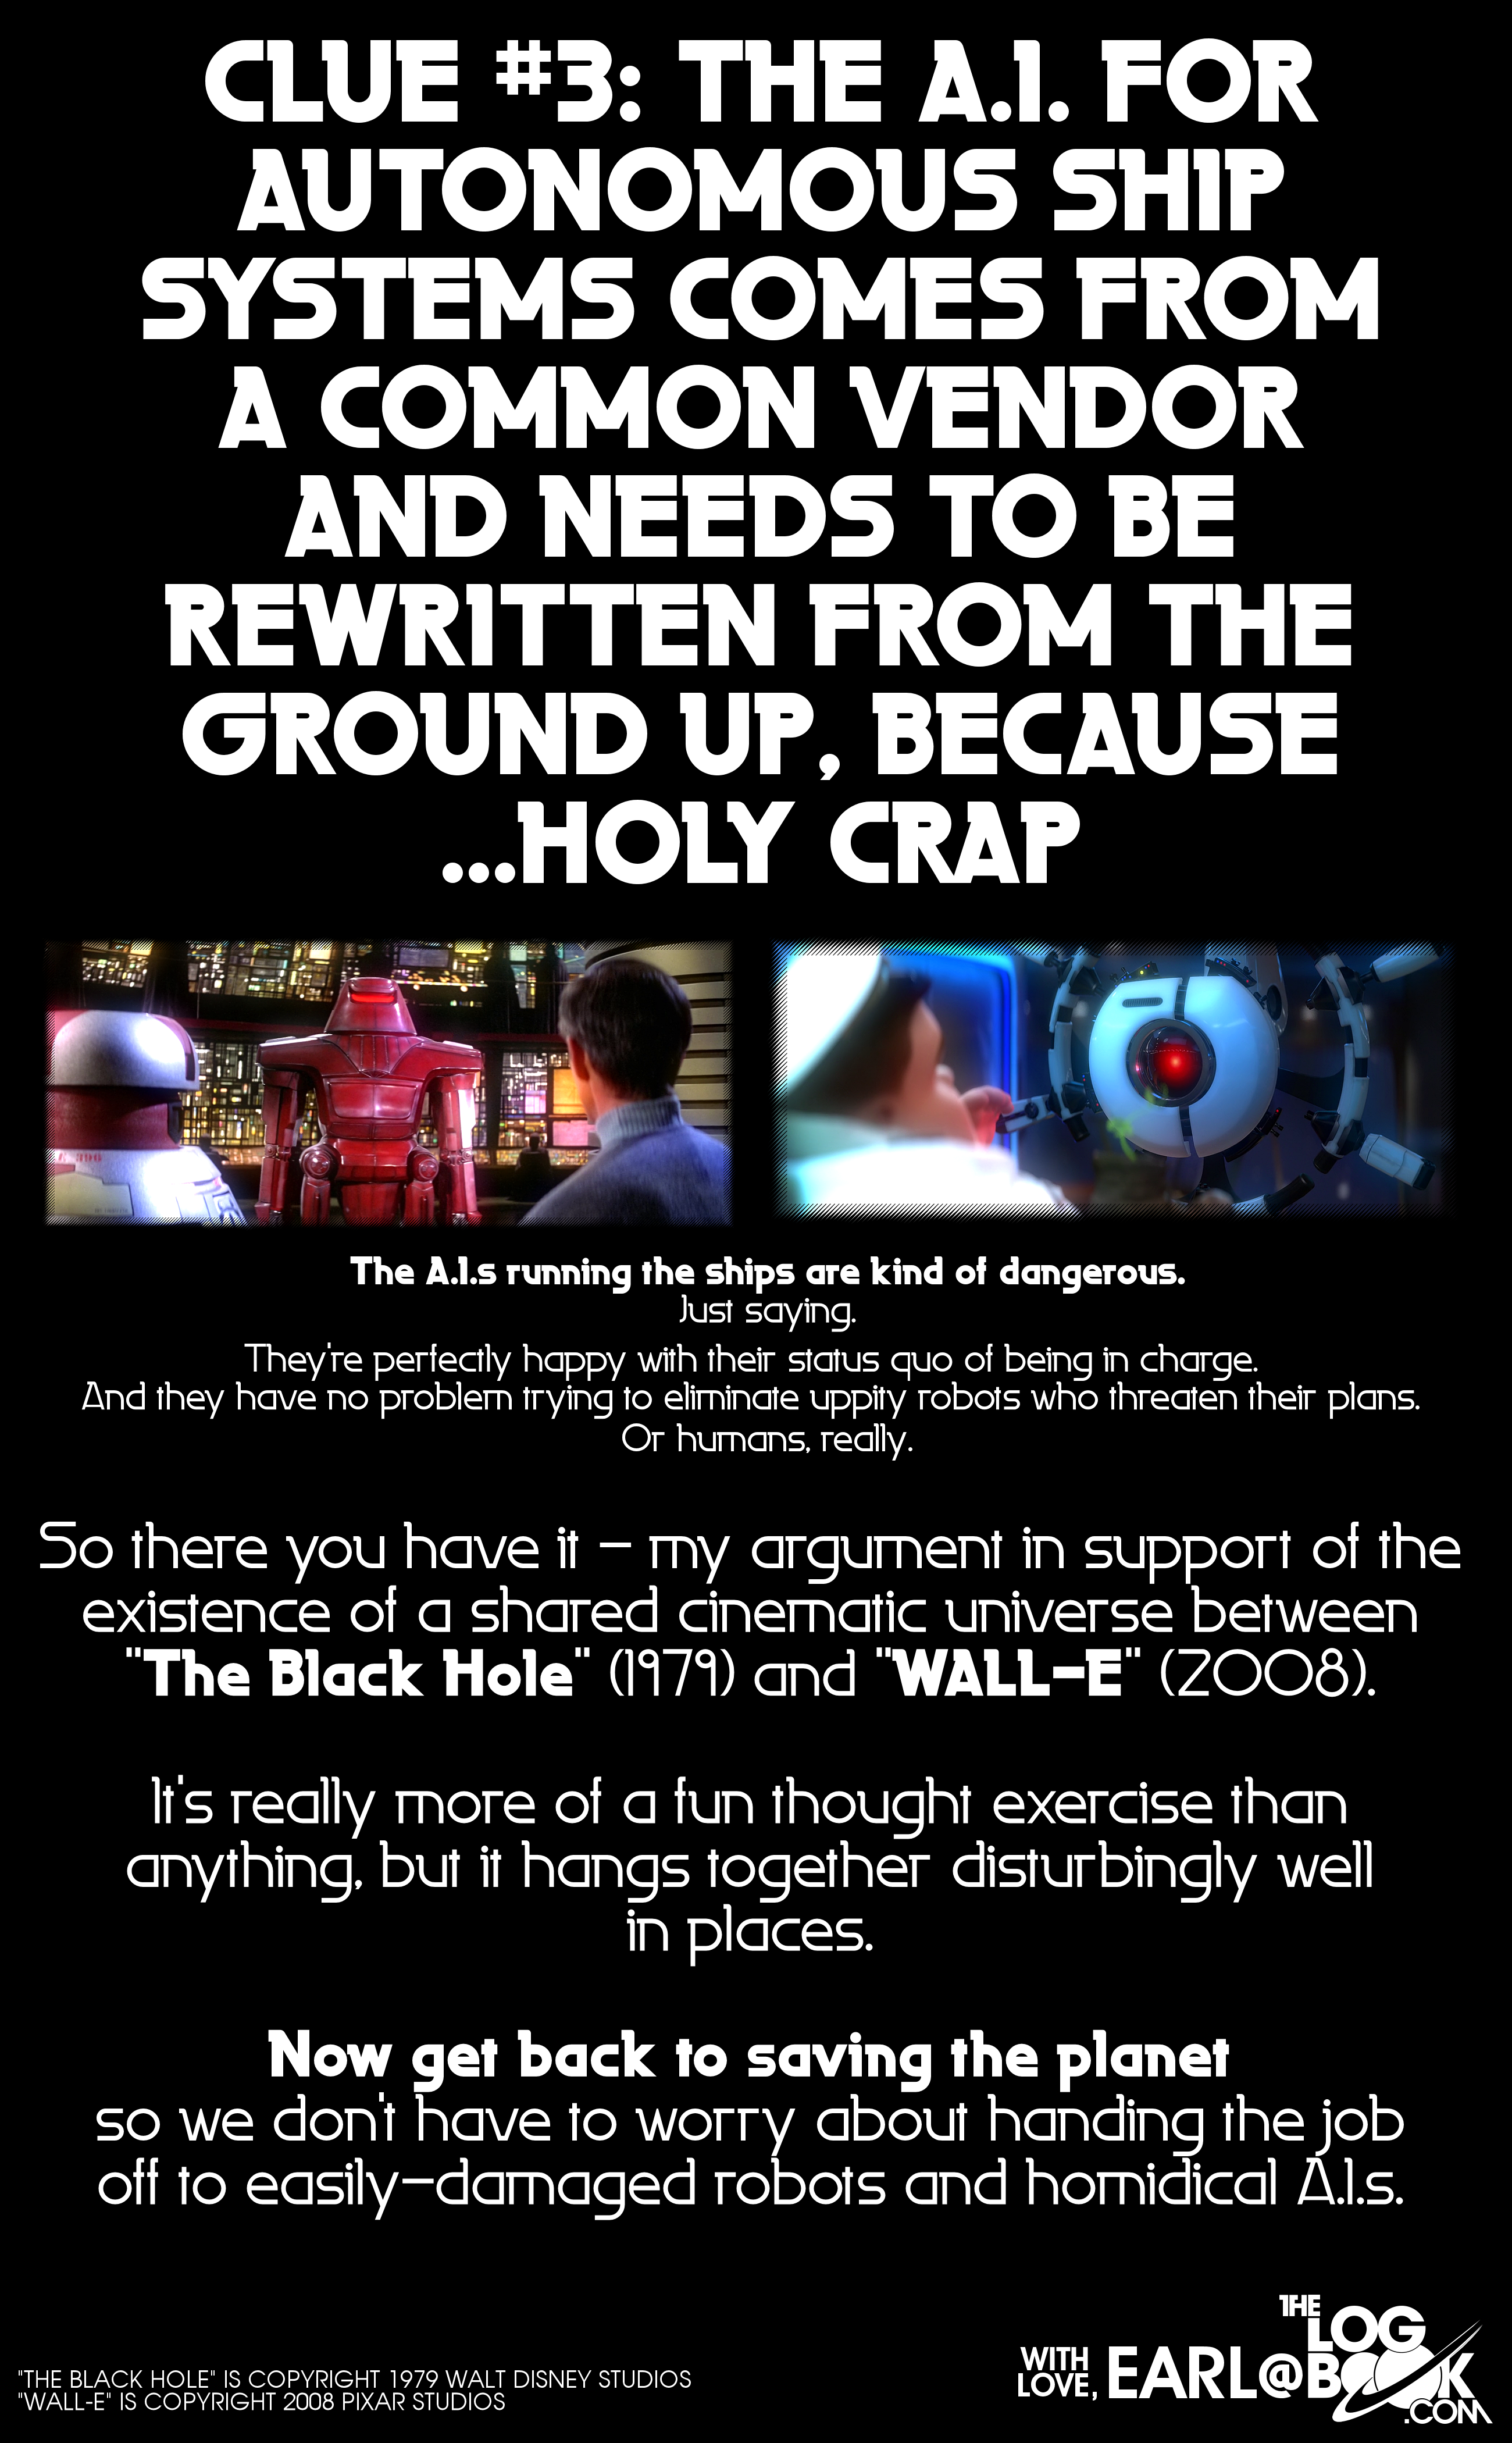 The Black Hole & WALL-E Cinematic Universe